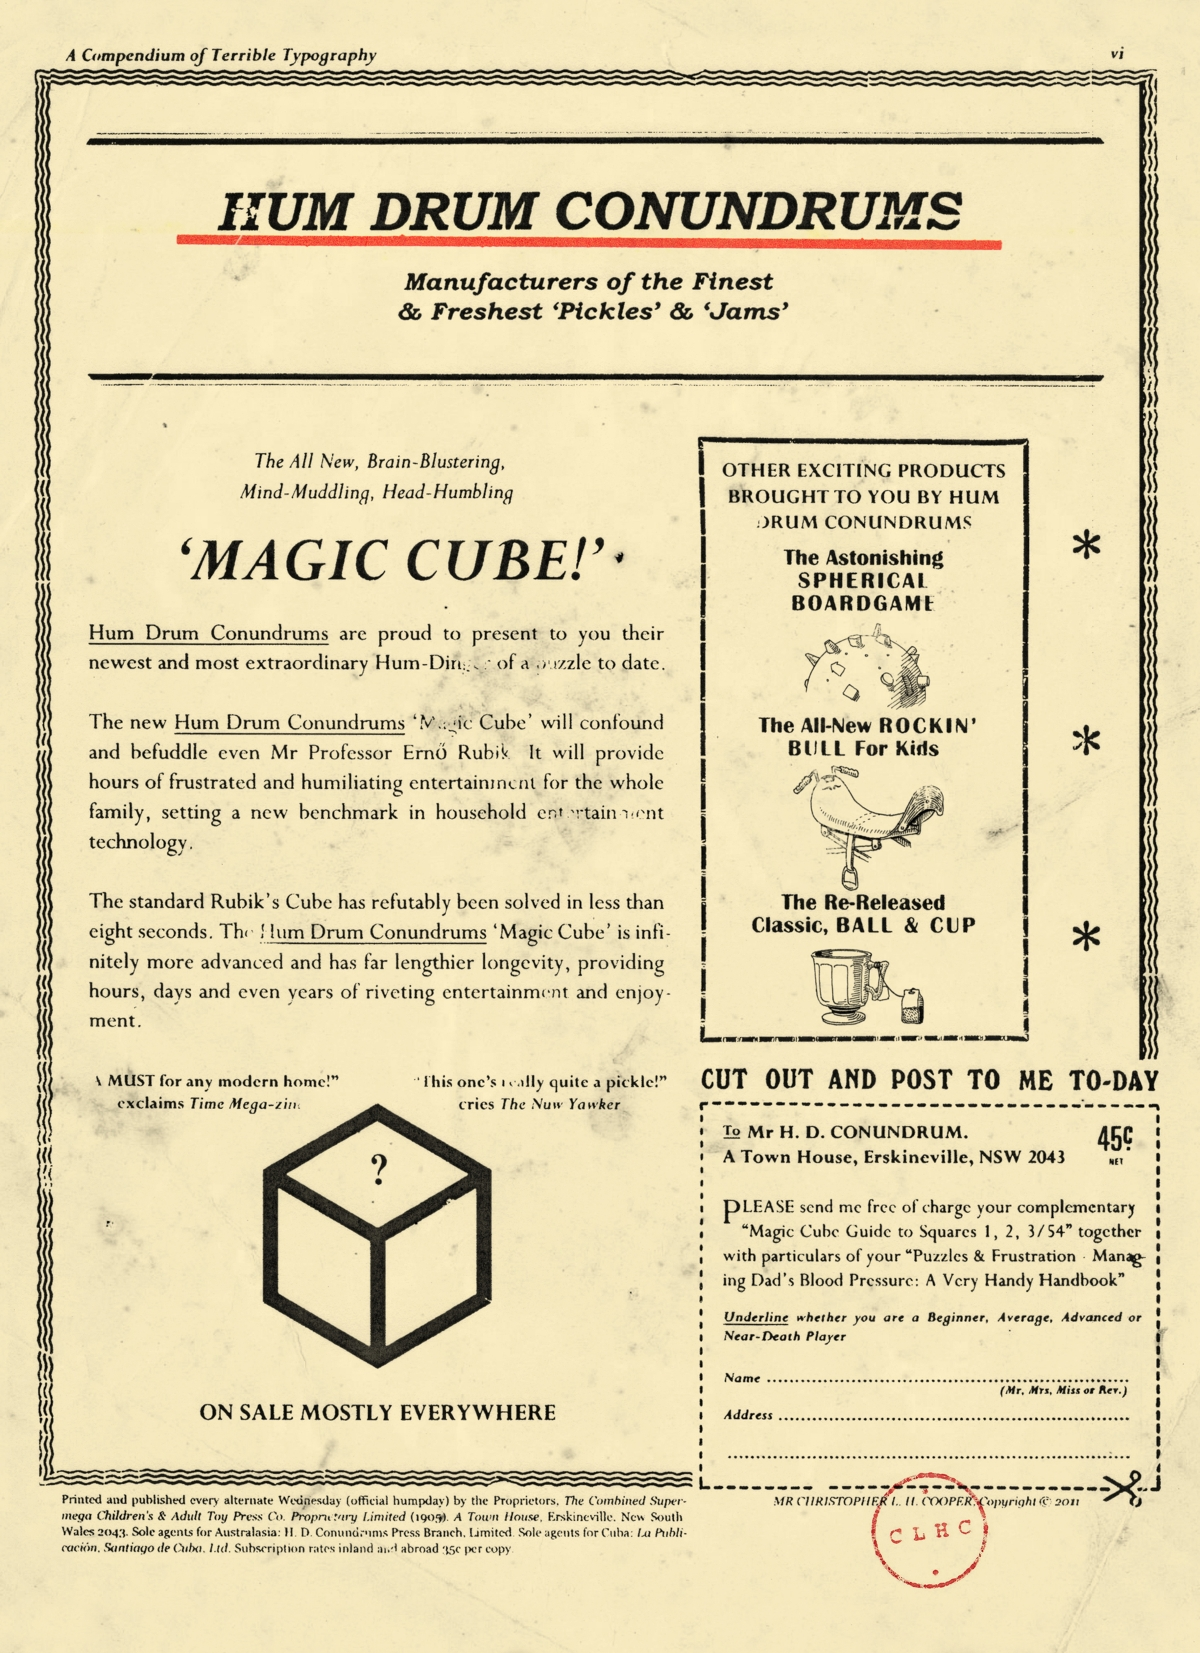 A rather silly advertisement for the Hum Drum Conundrums Magic Cube.